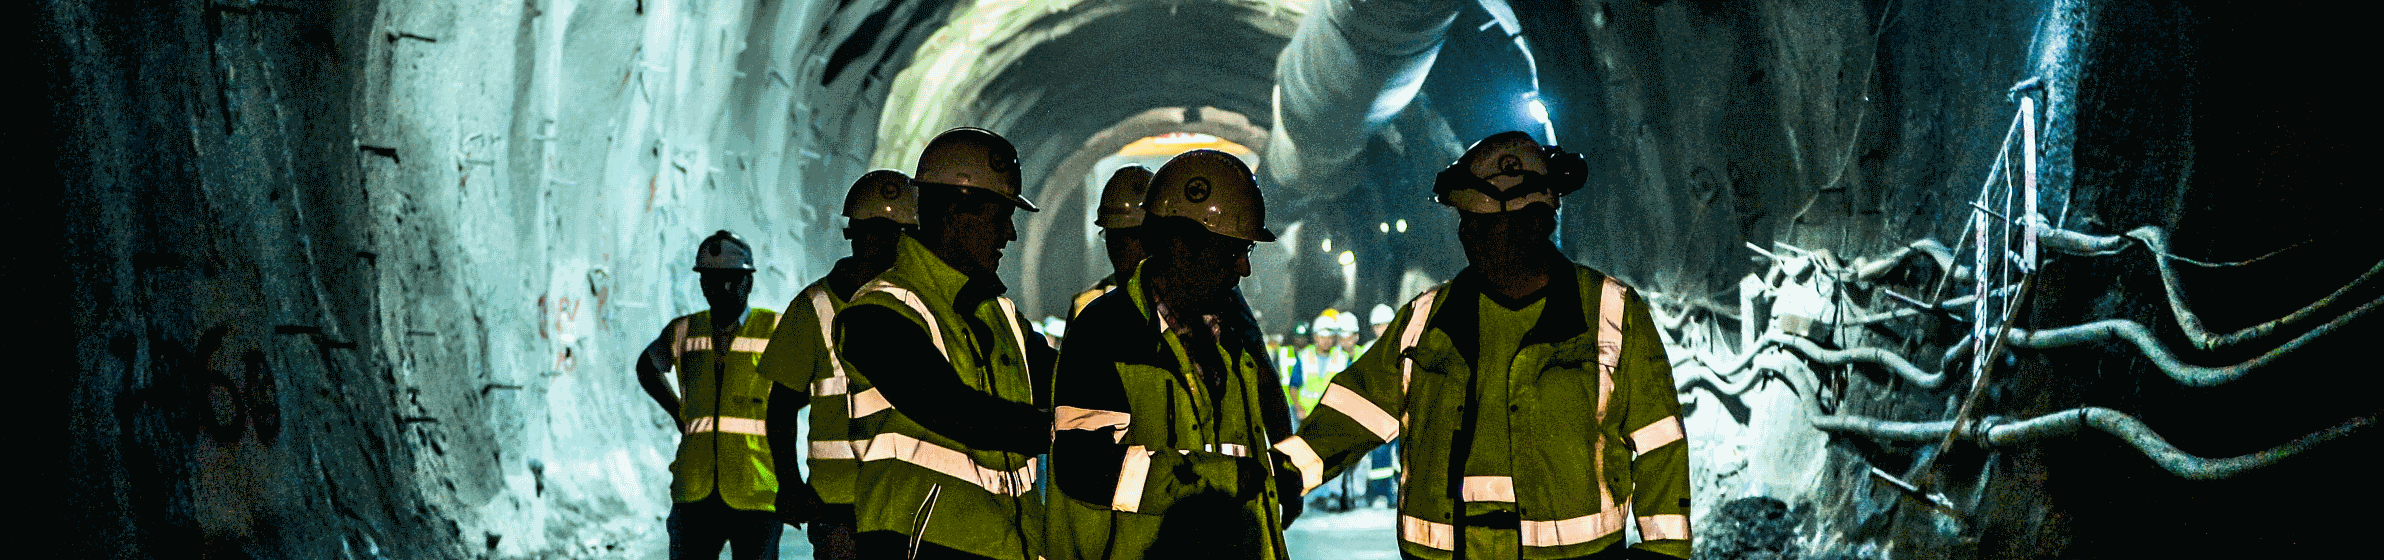 Inside tunnel at construction site